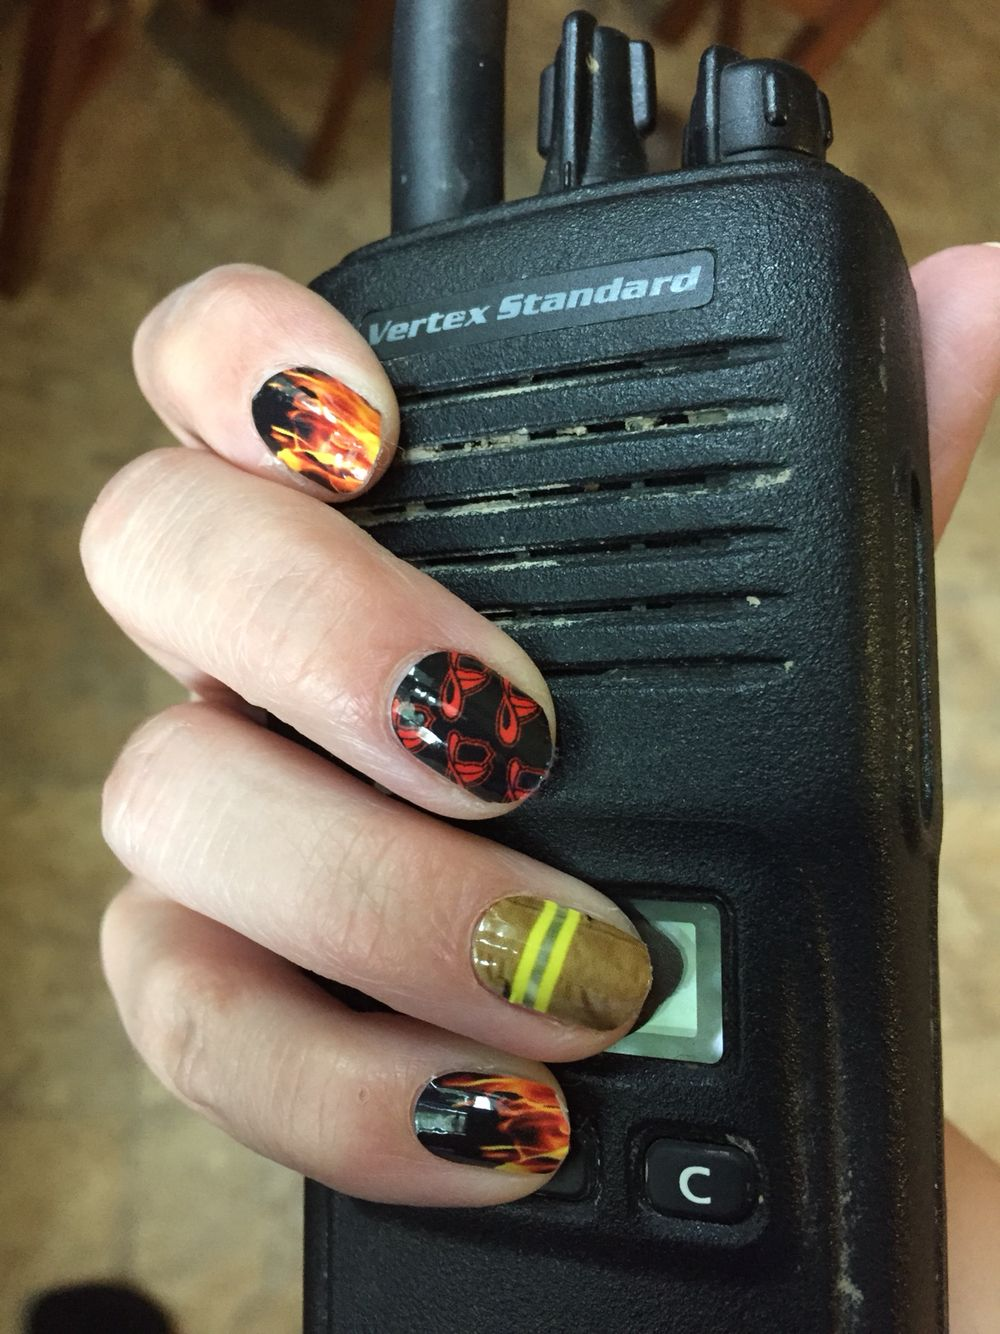 Love my firefighter nails!!! What a great way to support my hubby ...